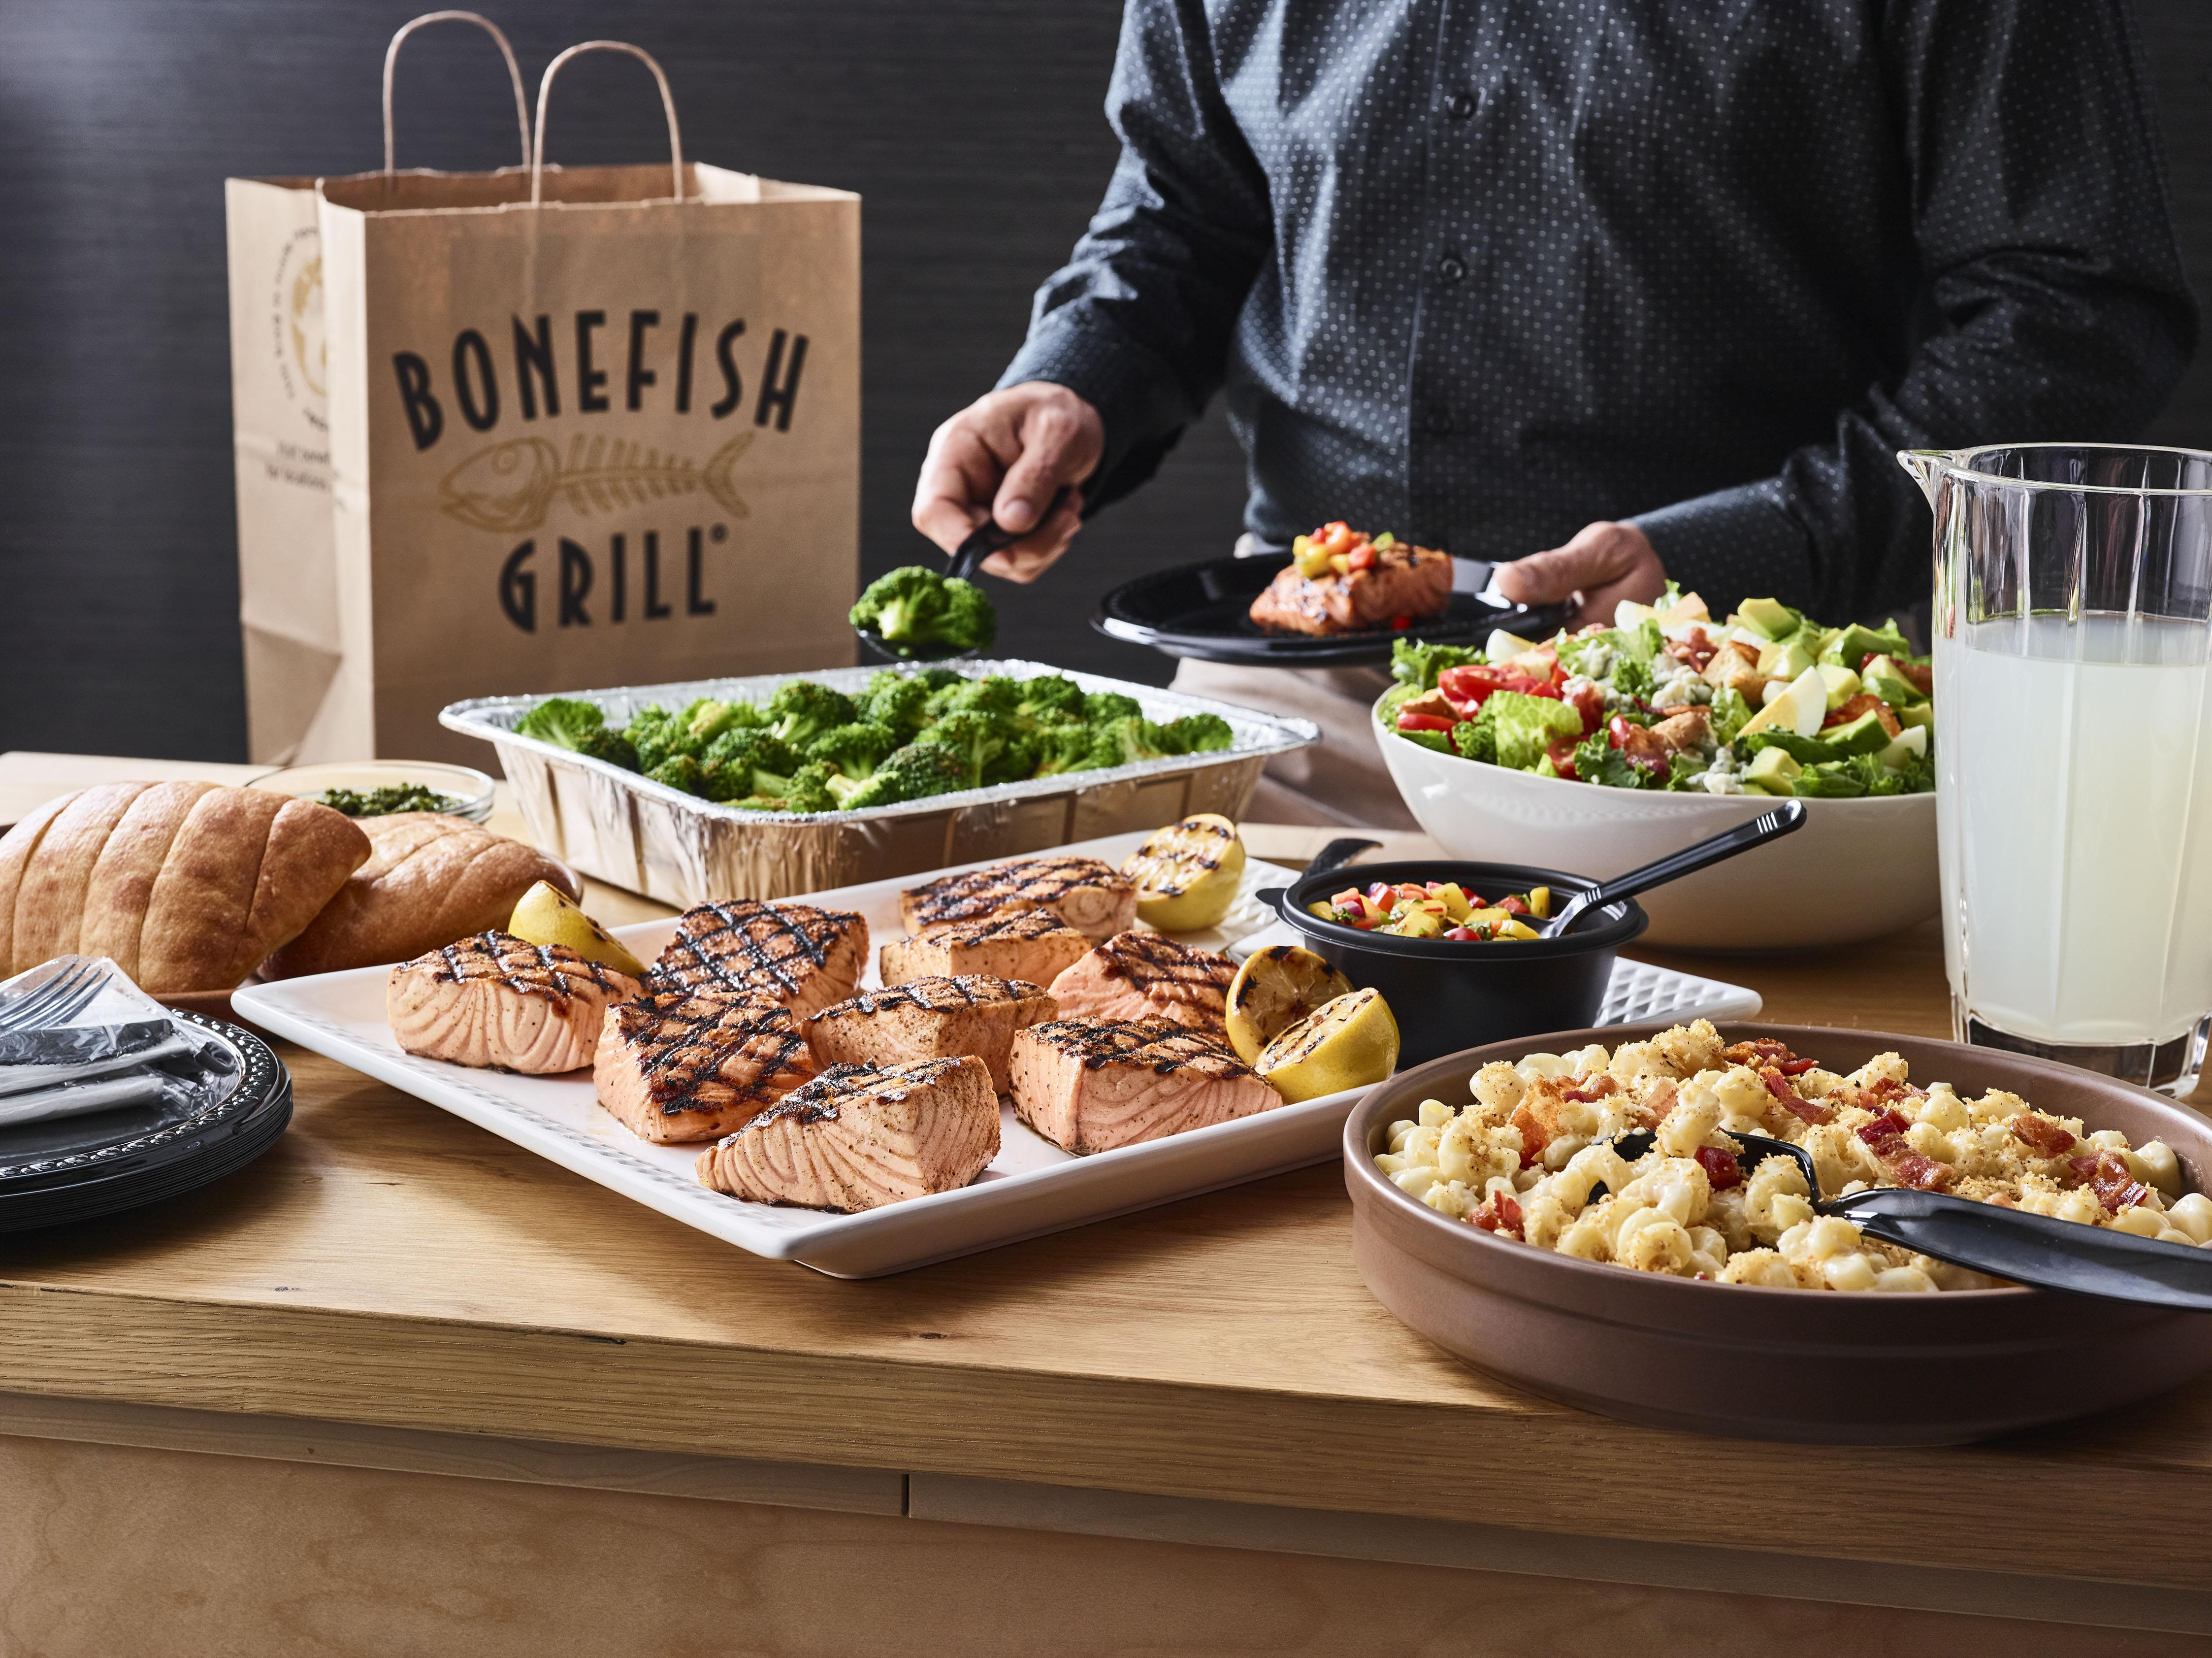 WIN a $50 Gift Card to Bonefish Grill!